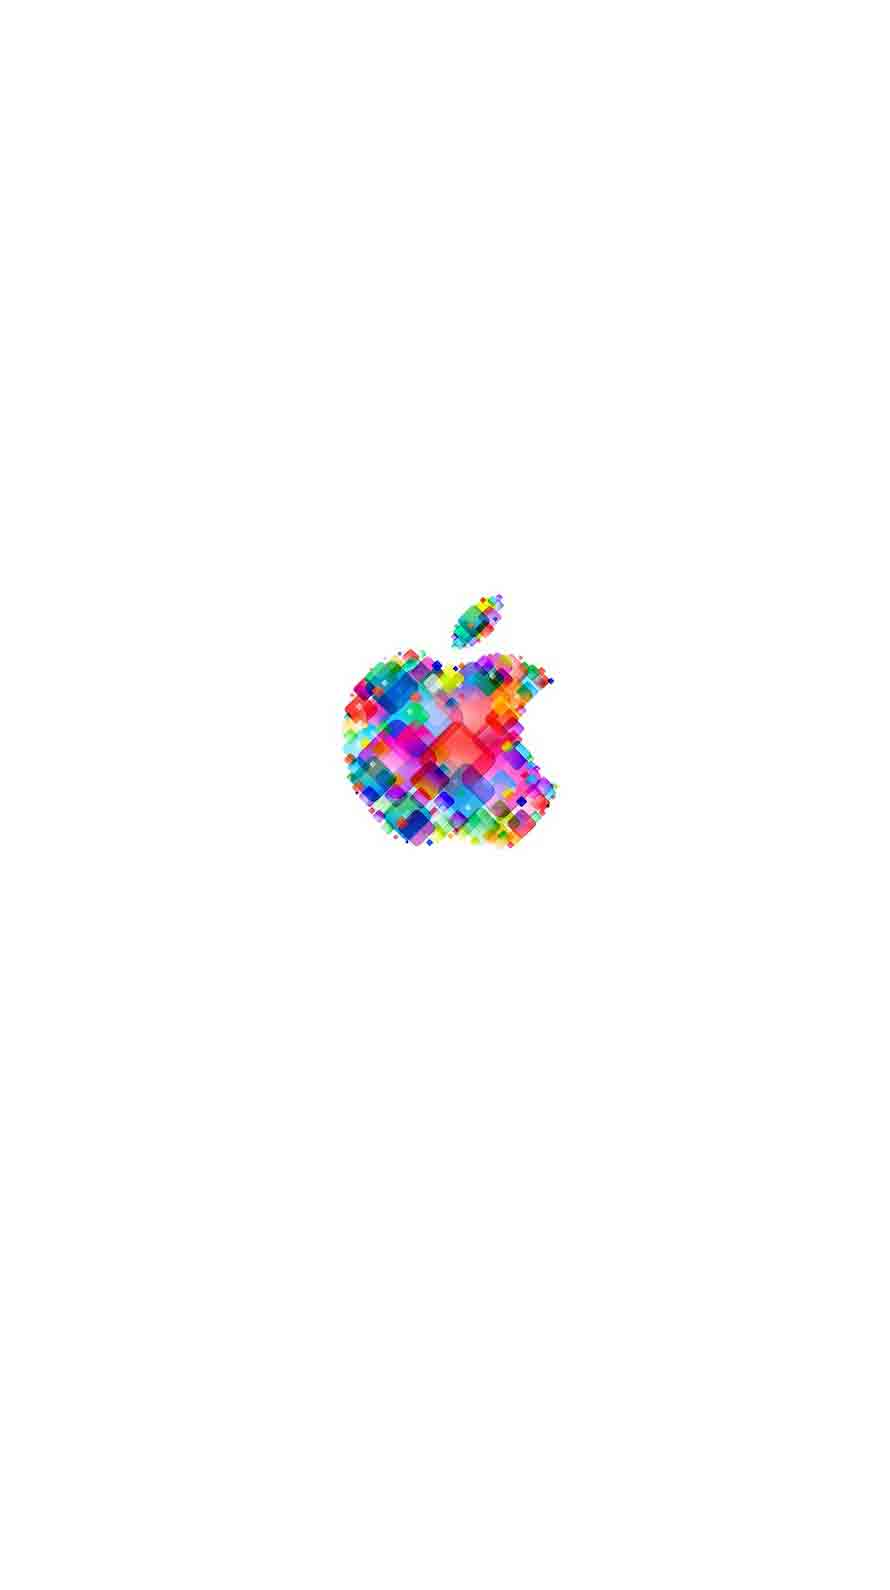 Neon white wallpapers wallpaper cave. Apple logo pop colorful white | wallpaper.sc iPhone6s